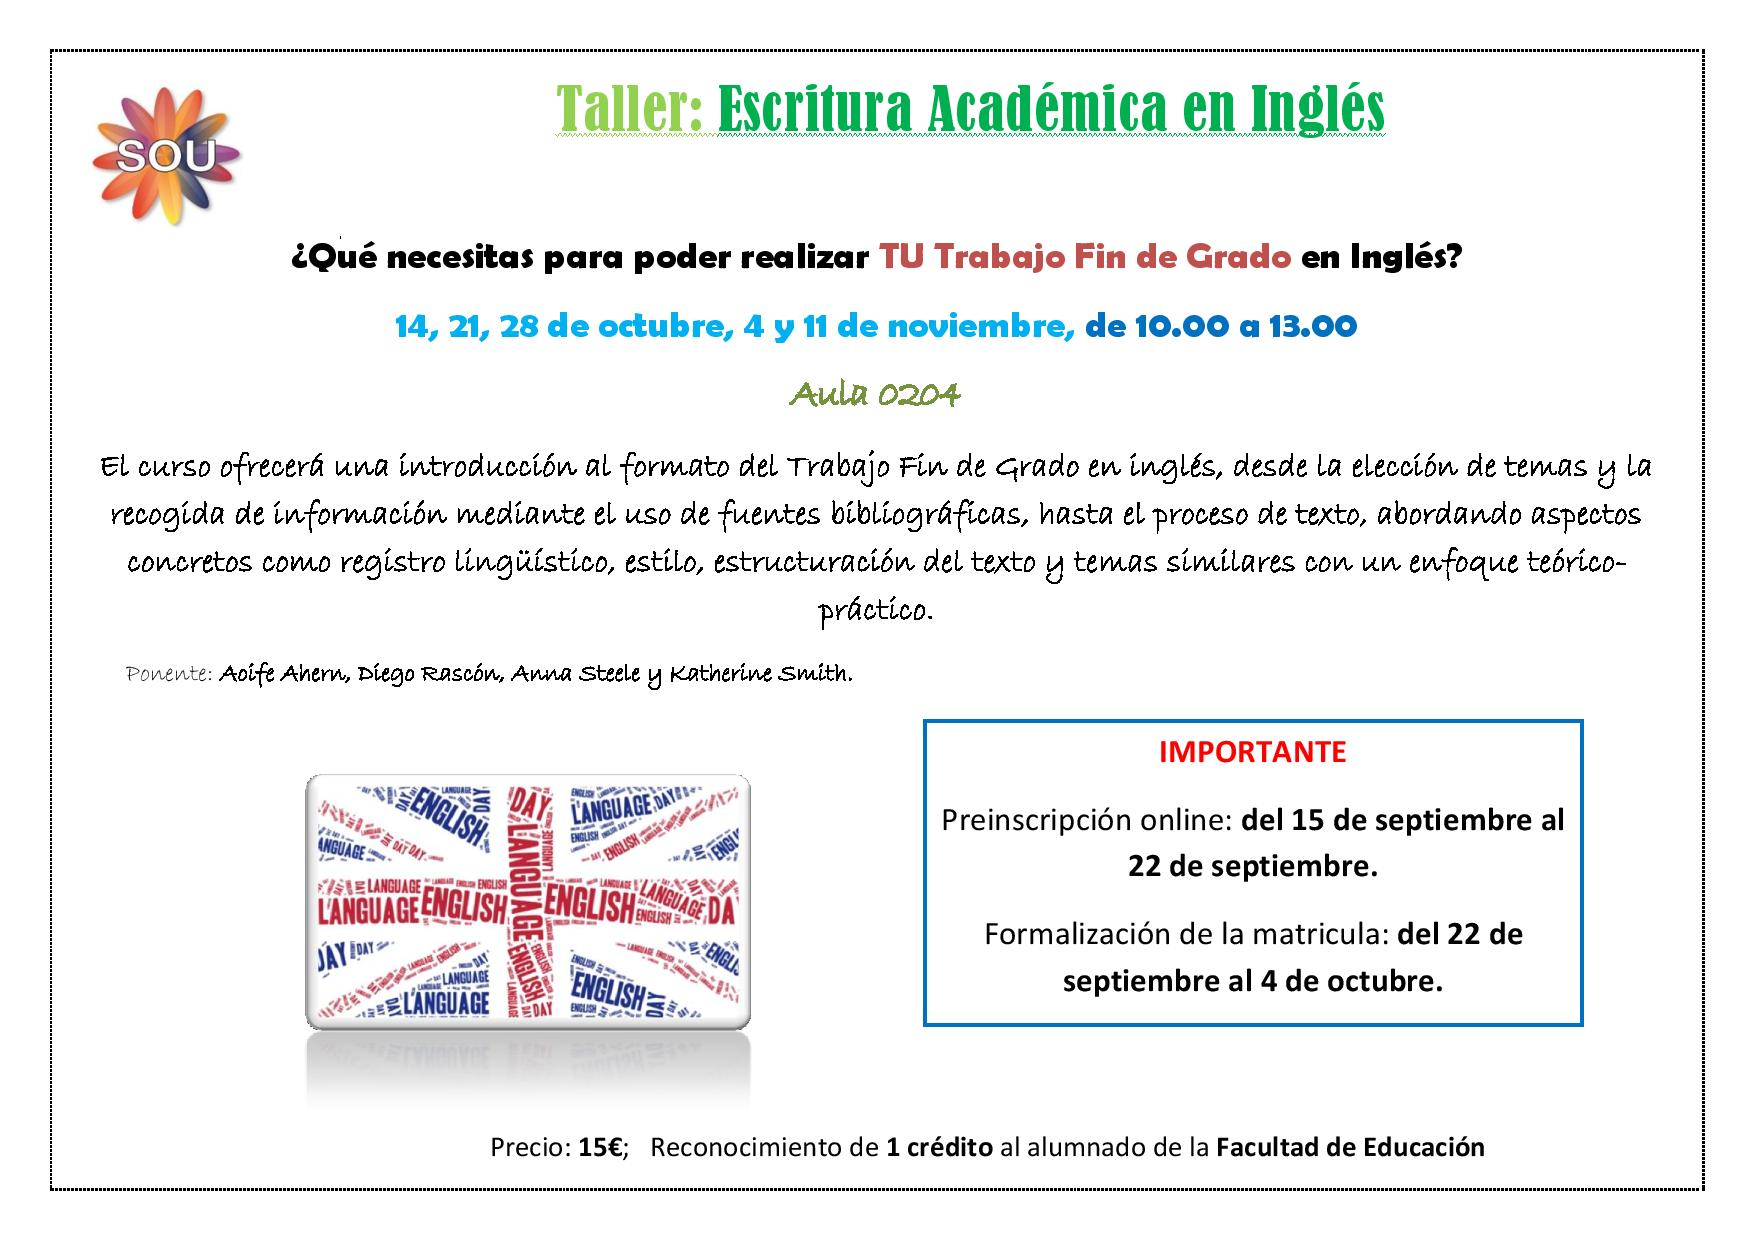 Academic Writing Workshop 2016 - Taller de escritura académica en inglés